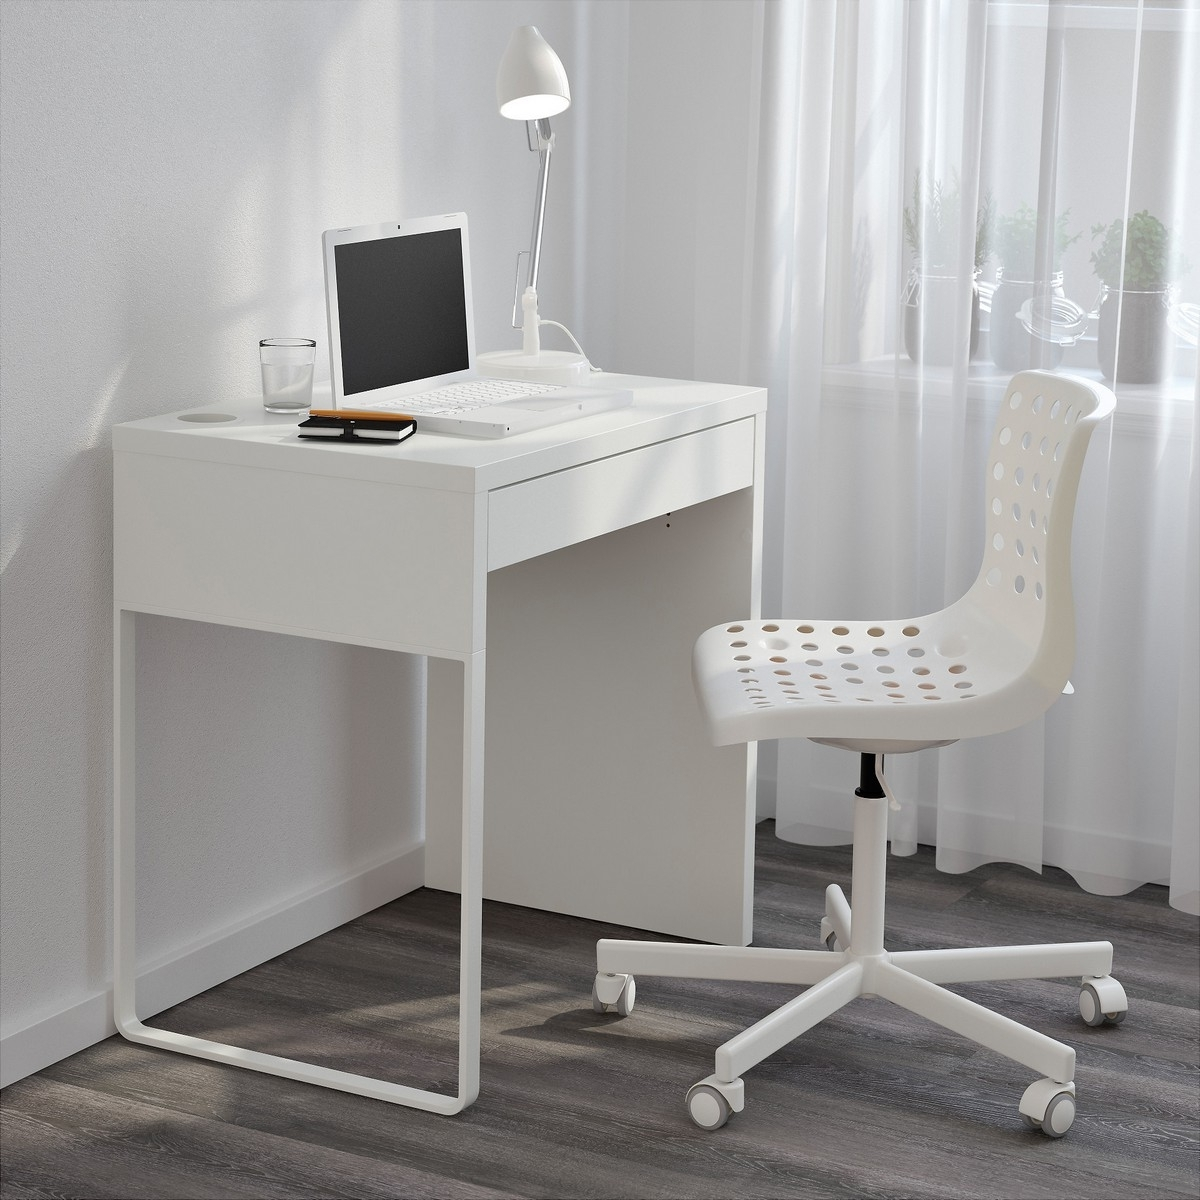 Desks For Small Spaces Style — Home Design Ideas : Make Small Pertaining To 2019 Computer Desks For Small Rooms (View 12 of 20)